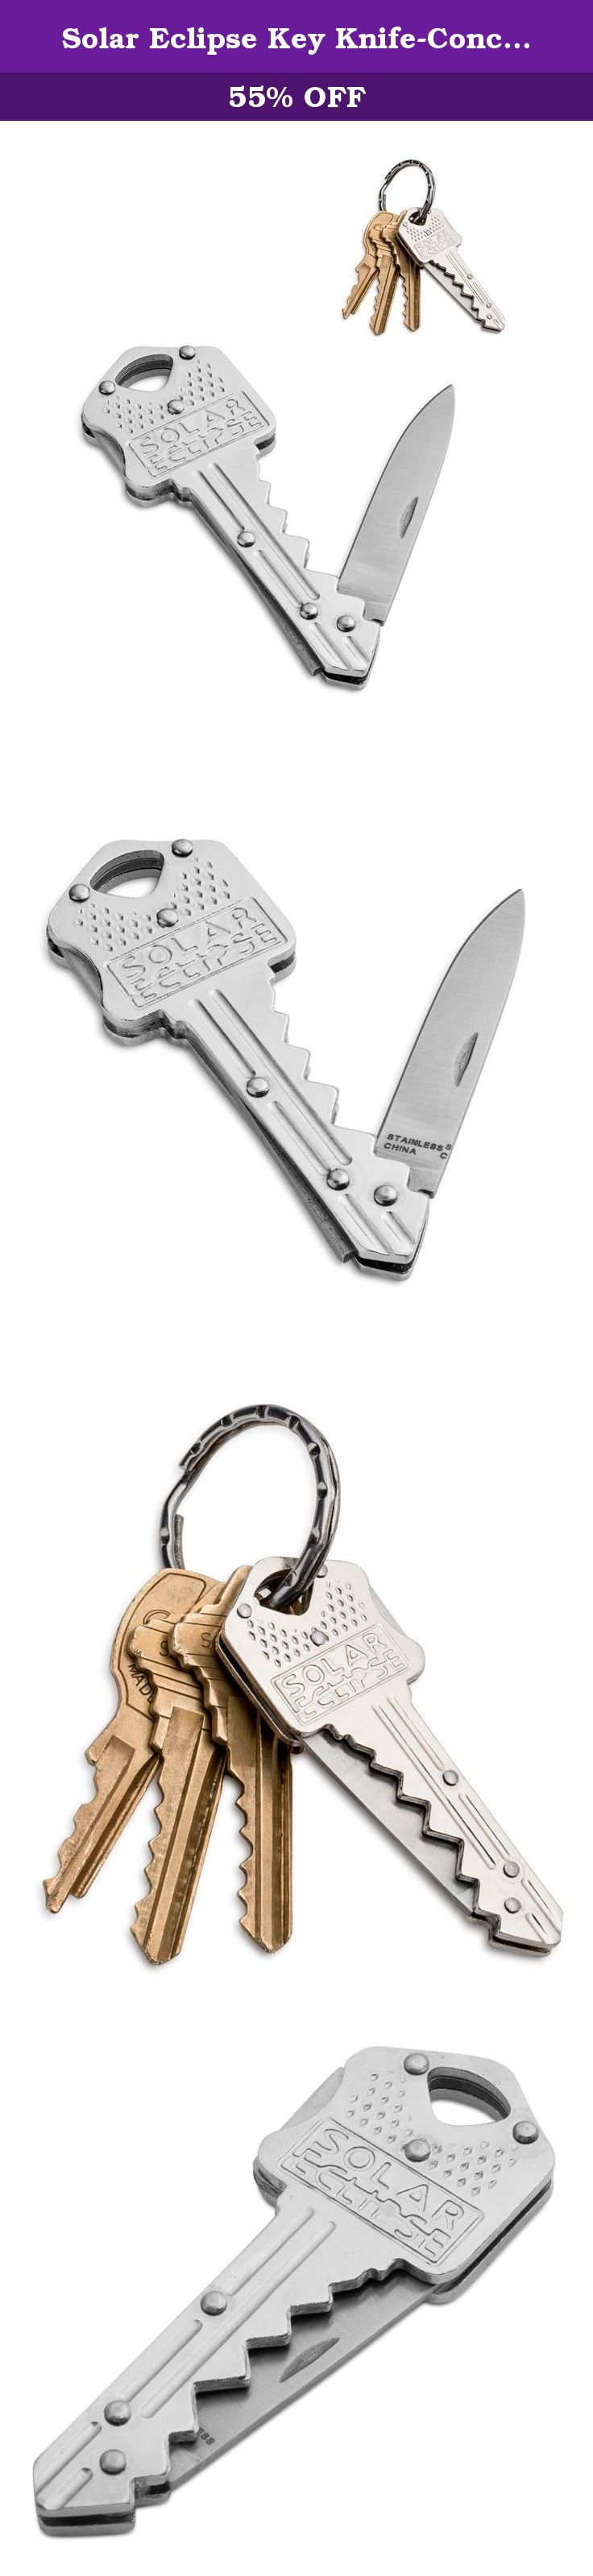 Solar Eclipse Key Knife-Concealed Box Cutter/Knife for Key-chain or Pocket With Safety Locking Feature. Have you ever found your self needing to cut packaging, an apple, but don't have a knife?! The is the perfect knife for those who don't want to carry a knife!! Shaped like a standard house key allowing you to carry it on your key-chain without hassle. The Solar Eclipse Key blade conceals a 1.5 inch knife that is sharp enough to cut through all the tape,packaging, food or anything else…